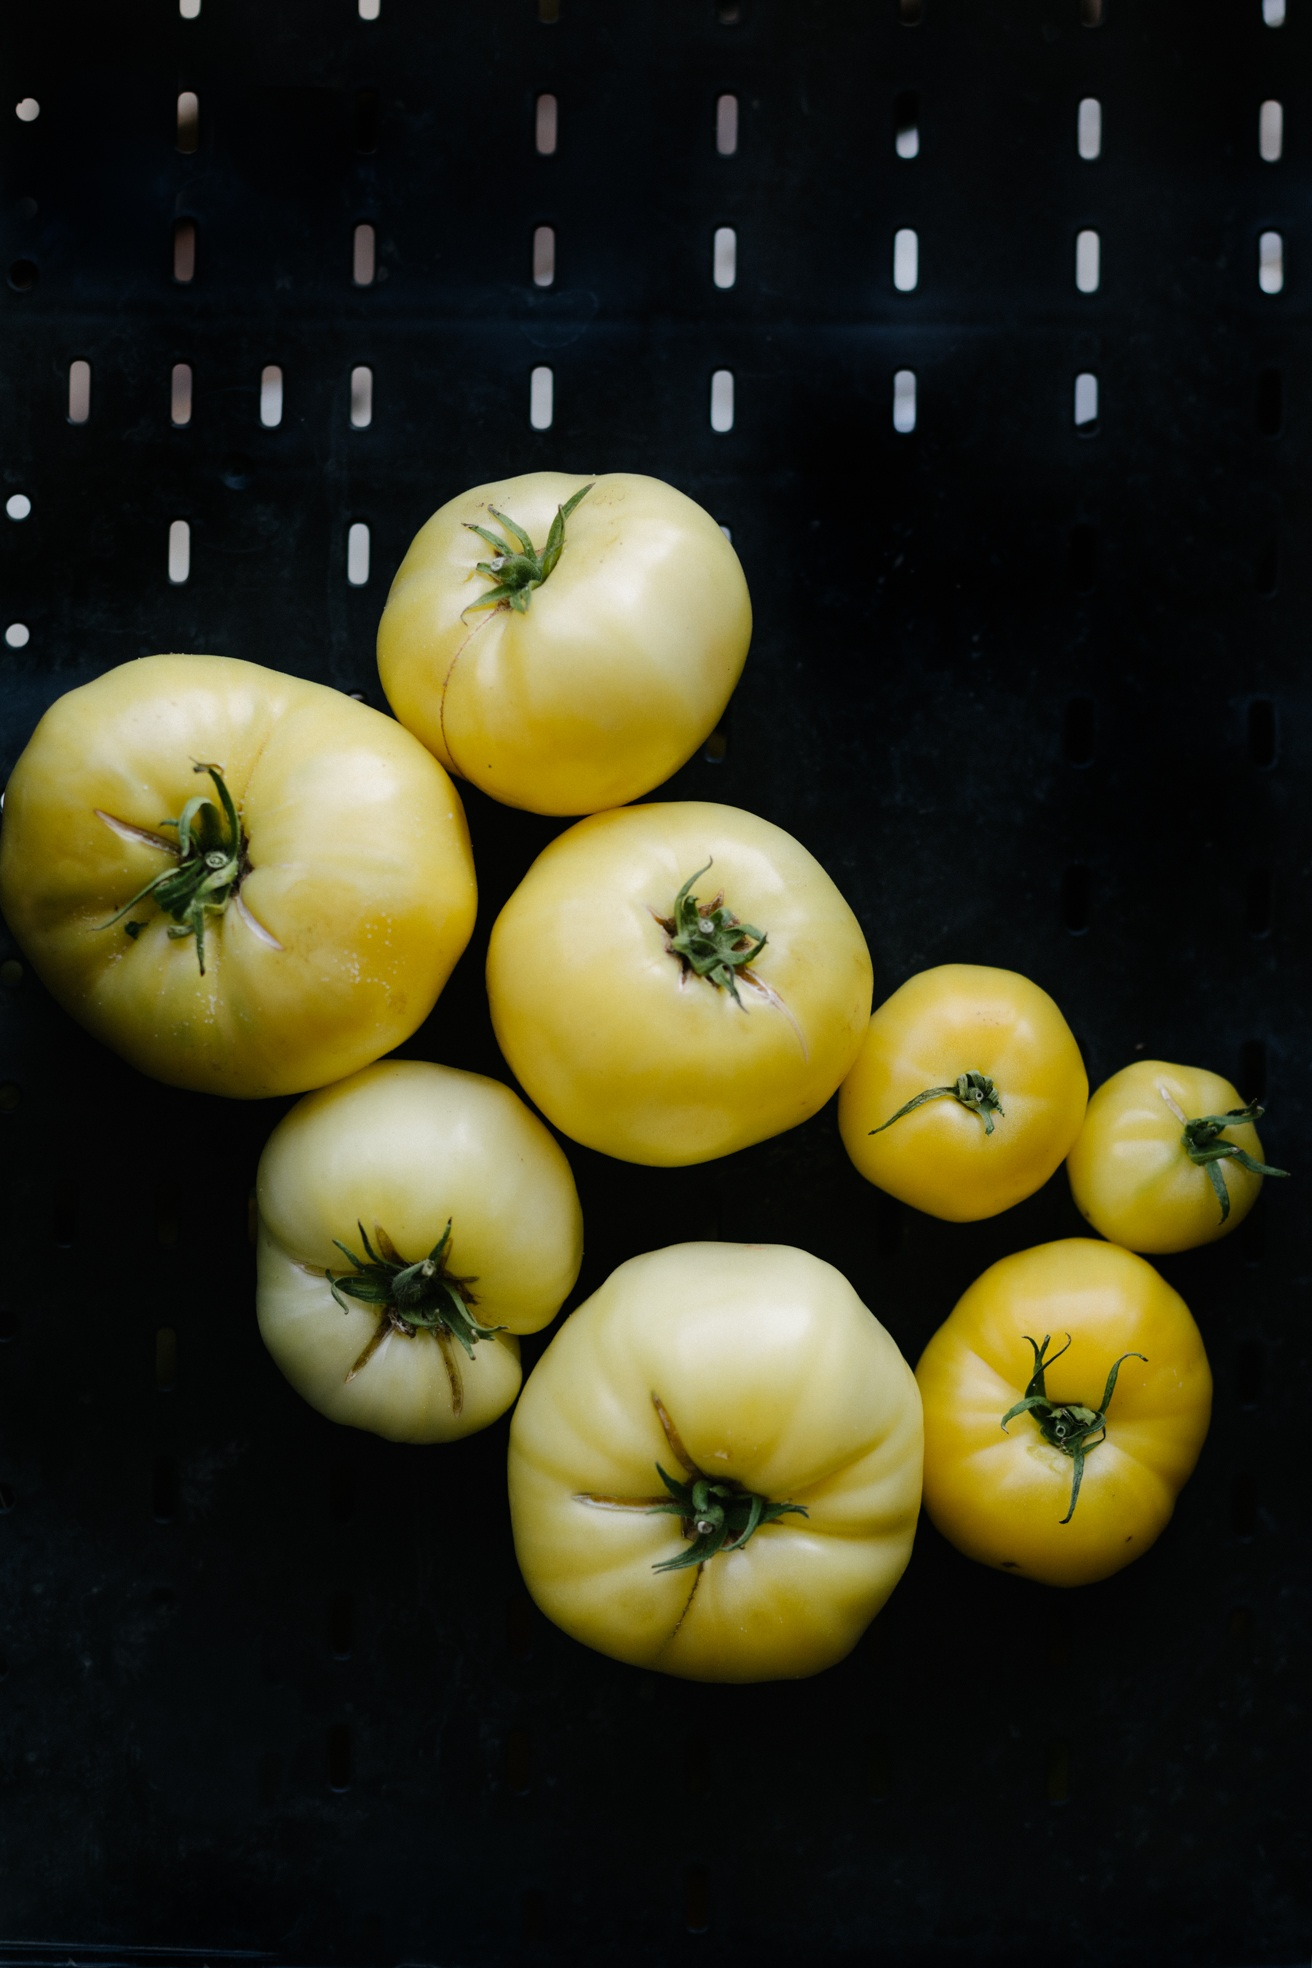 Jimena Peck Denver Lifestyle Food Photographer Yellow Tomatoes